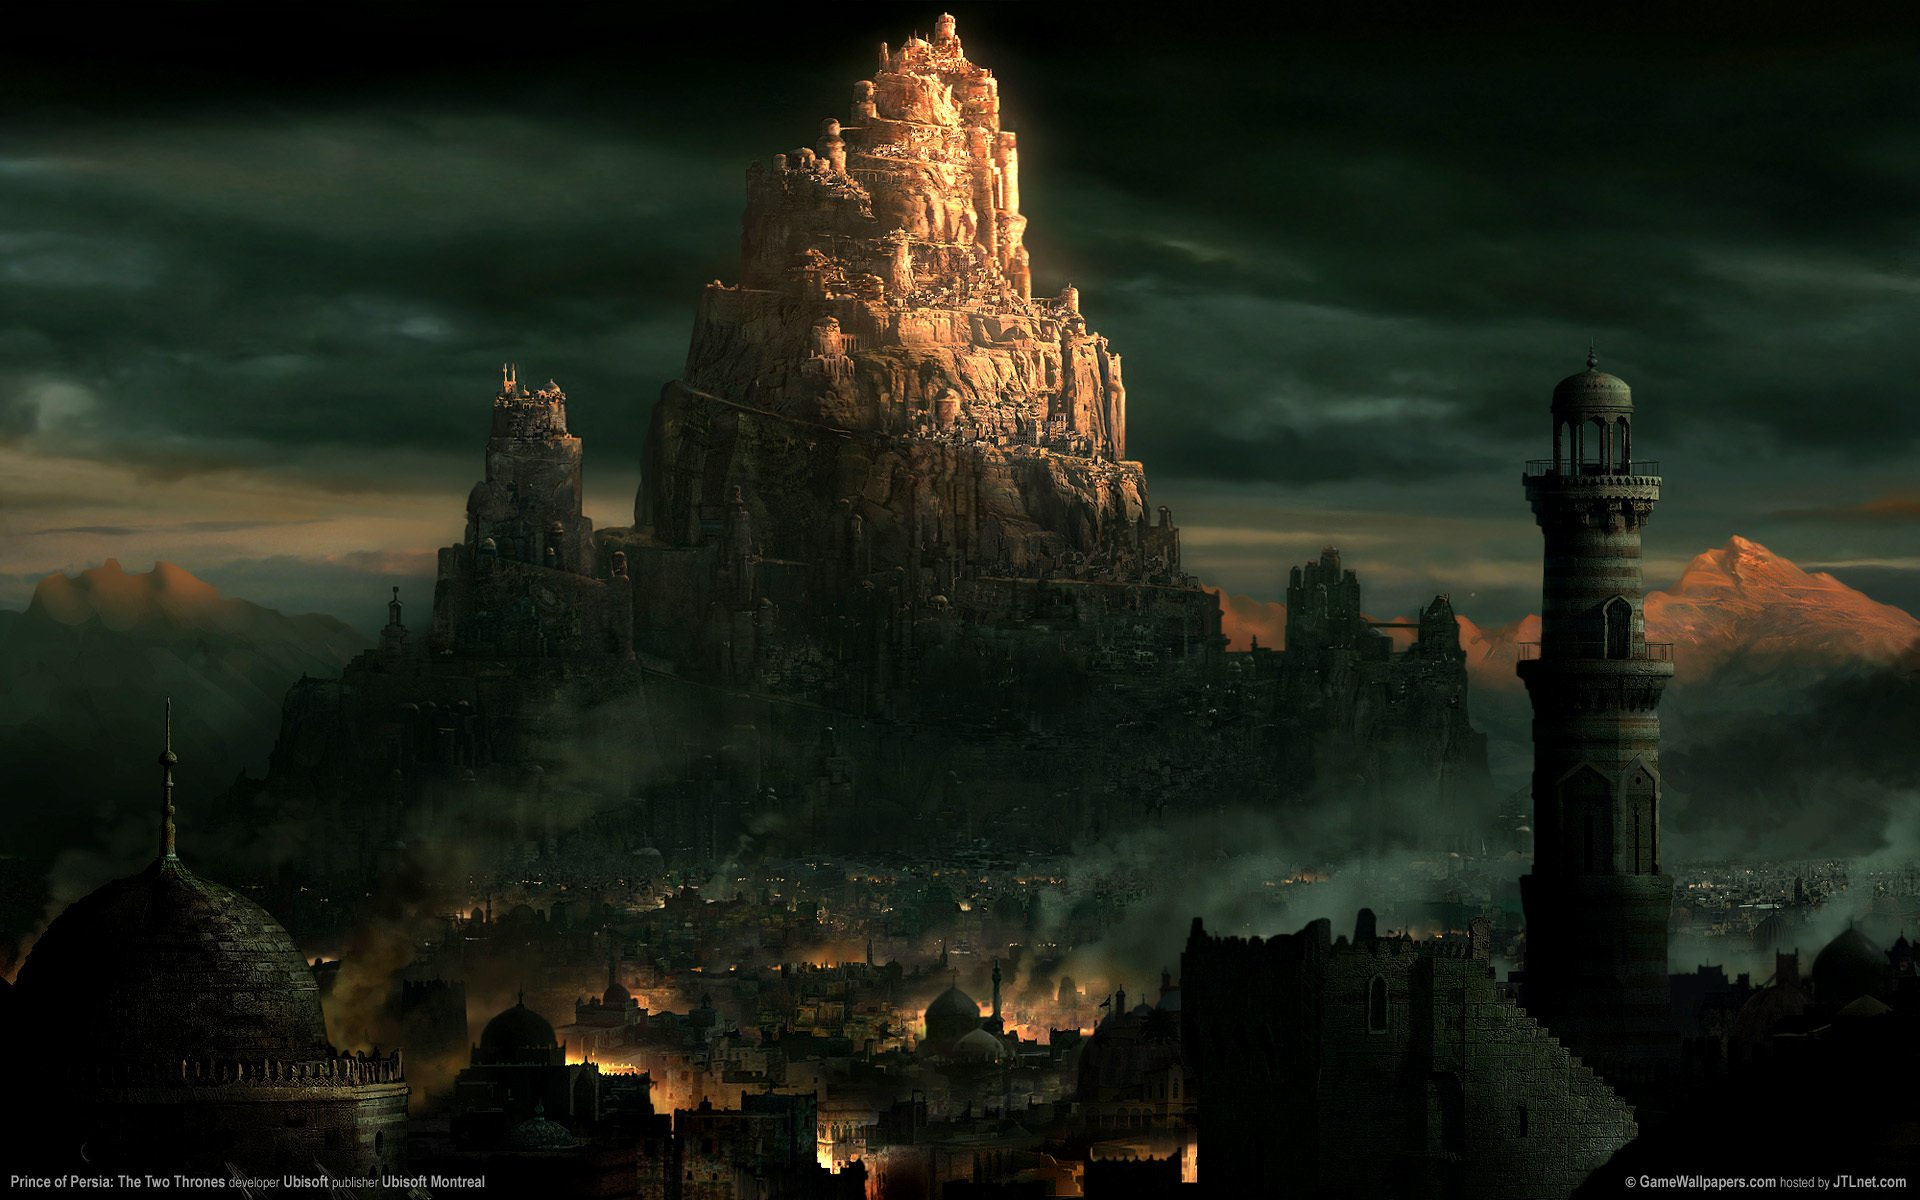 Video Game - Prince Of Persia: The Two Thrones  Forgoten City Mountain Stad Abstrakt Bakgrund